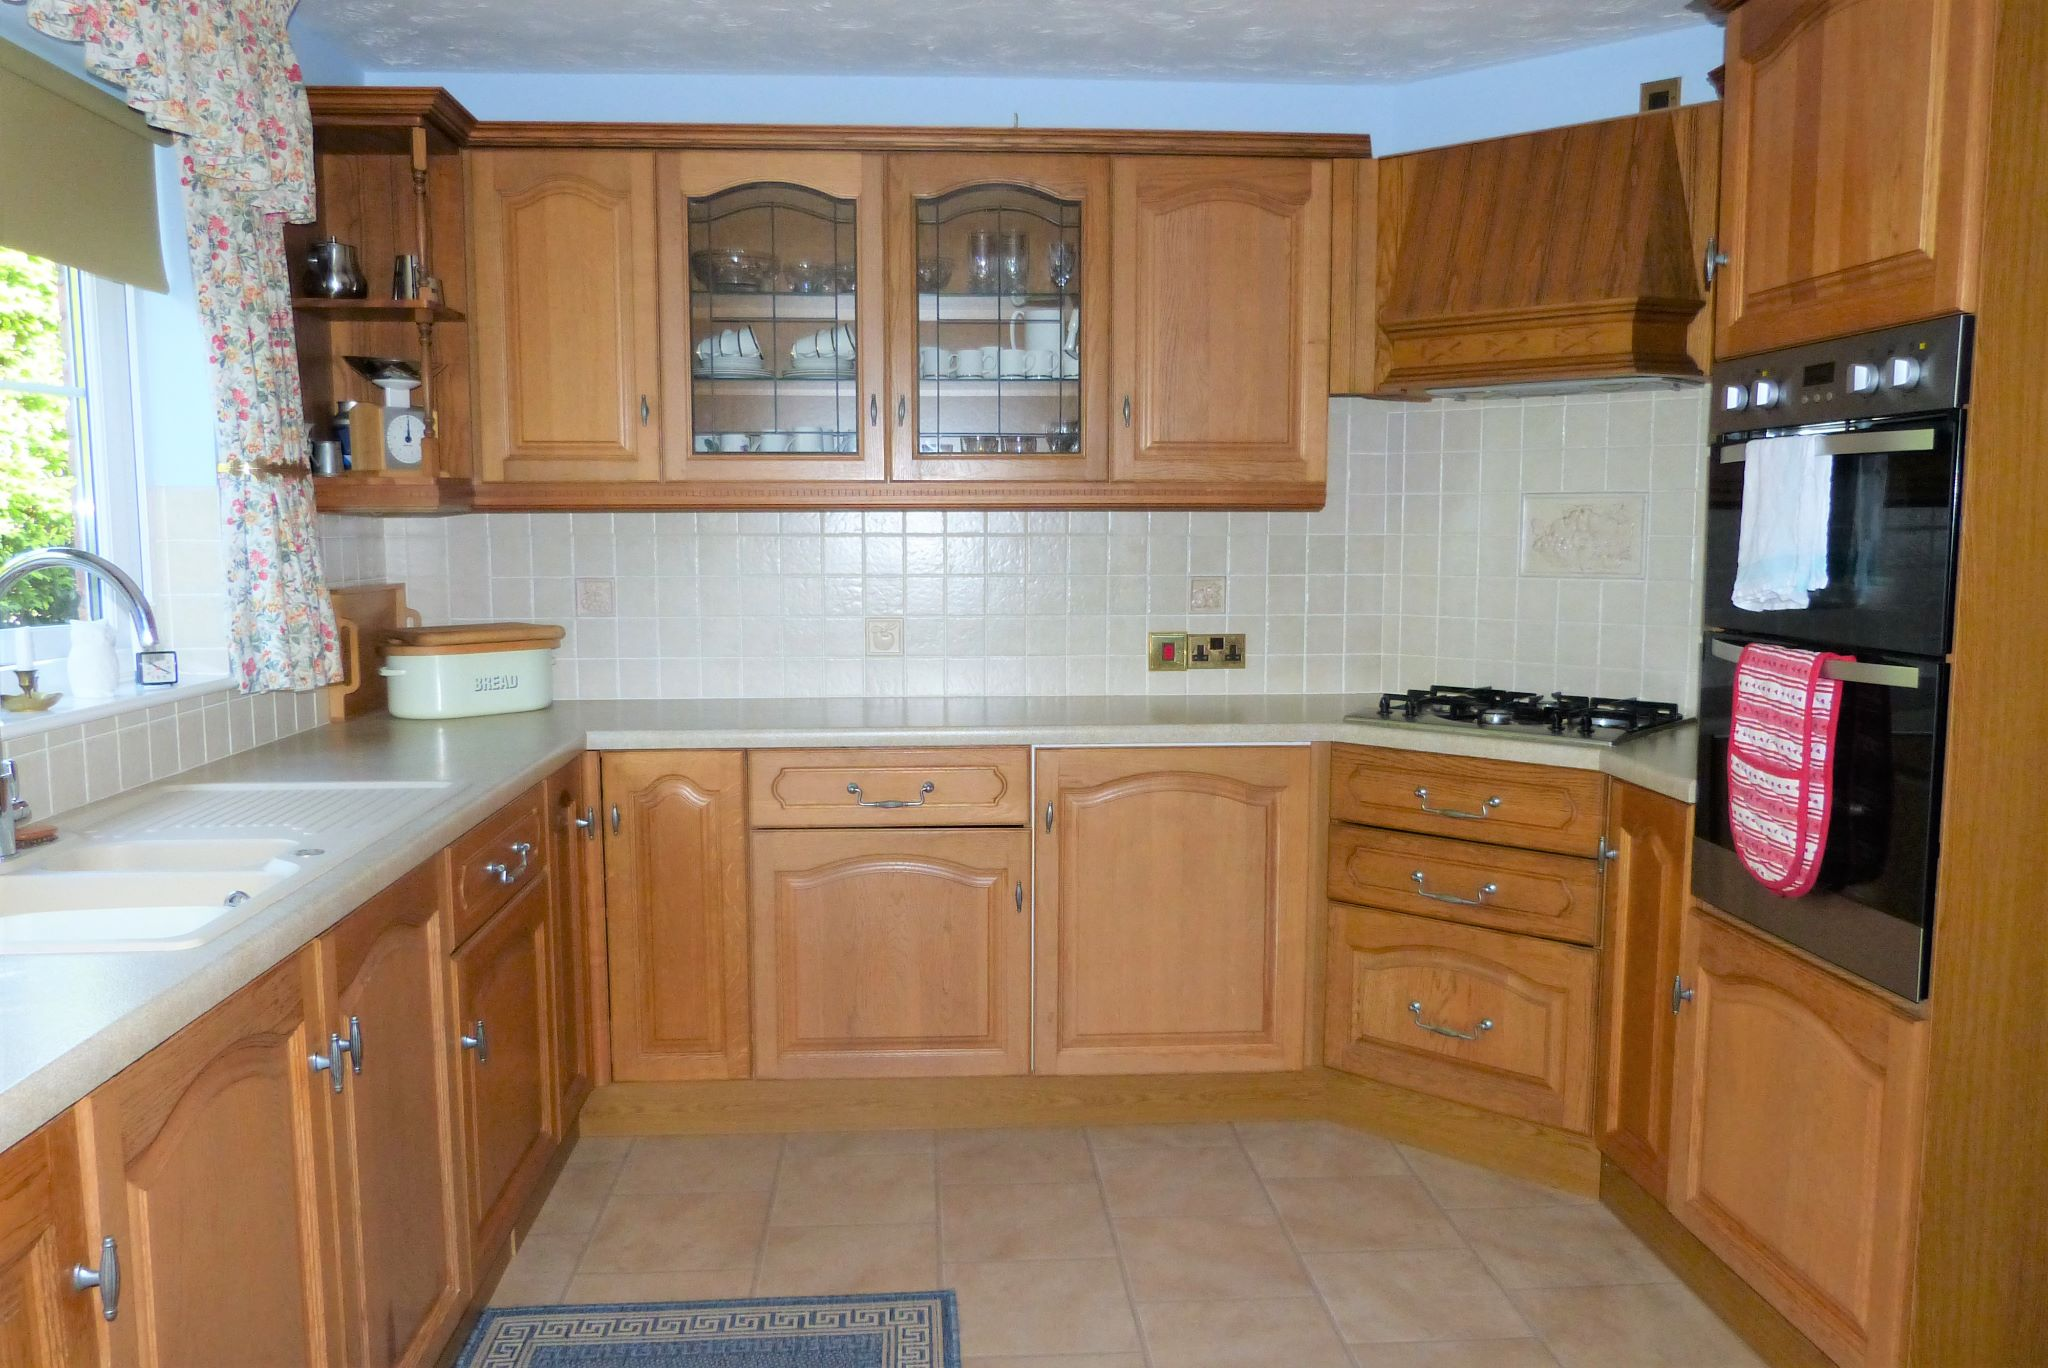 3 bedroom detached bungalow SSTC in Abergele - Photograph 5